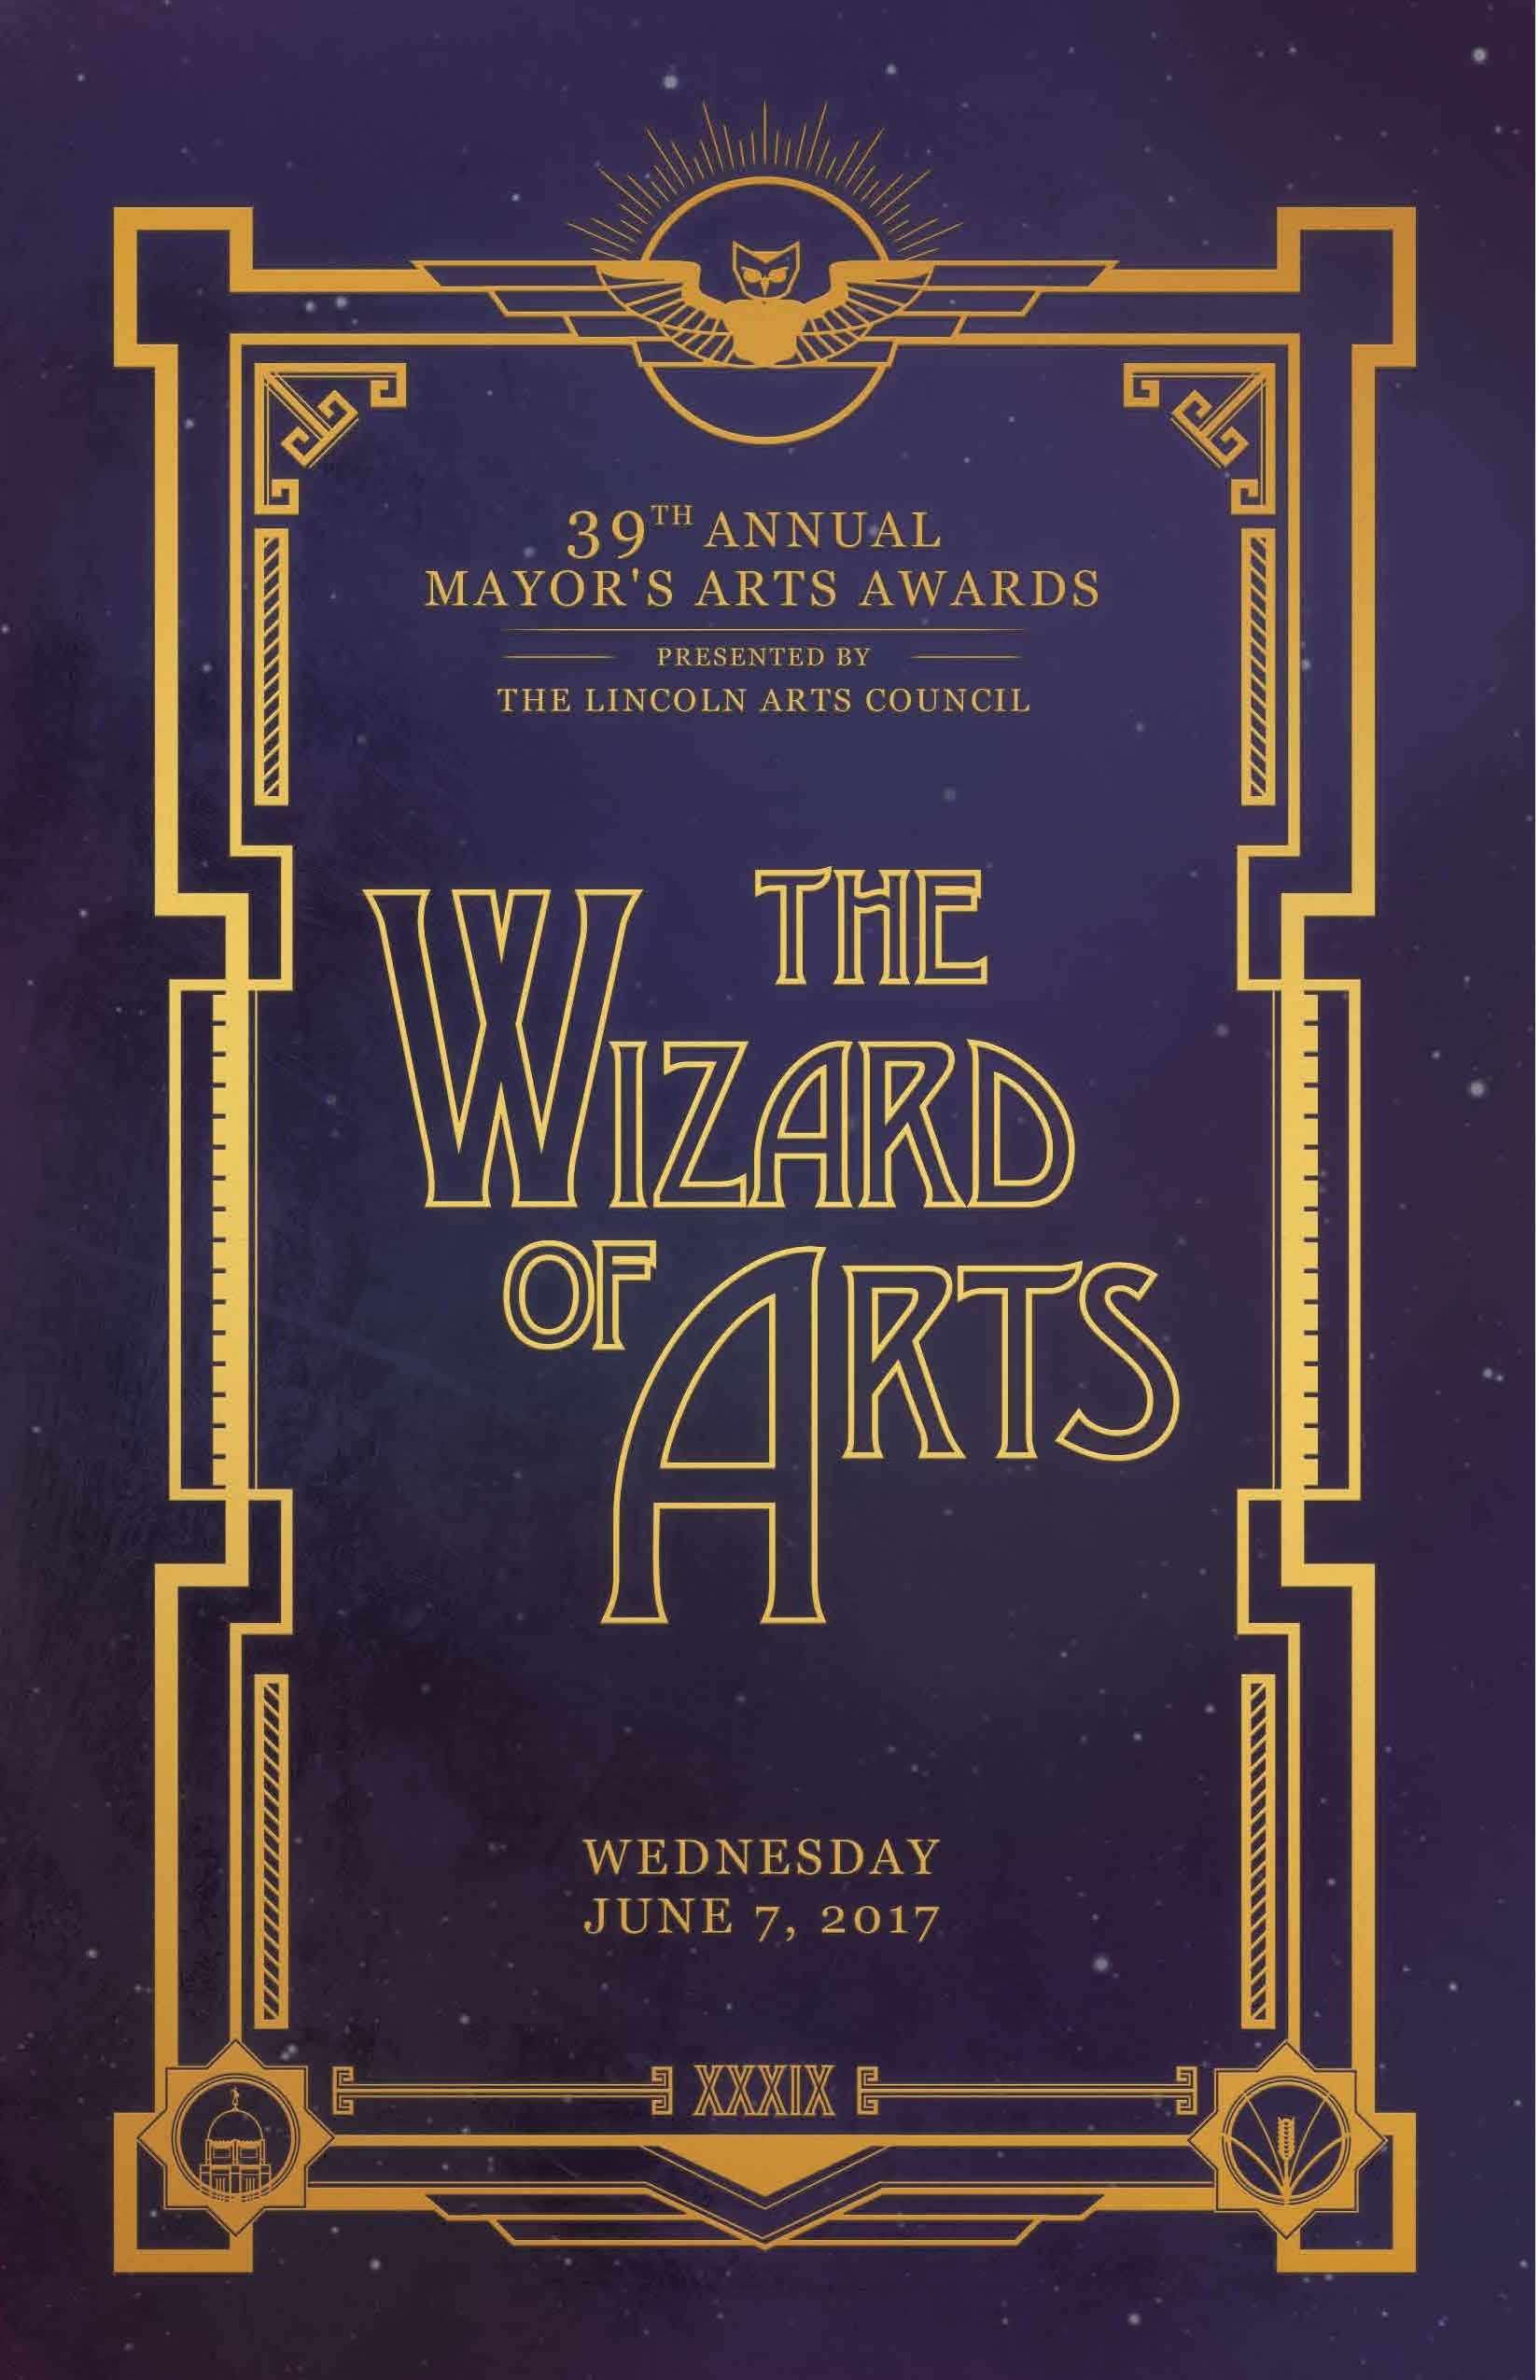 2017 Mayor's Arts Awards